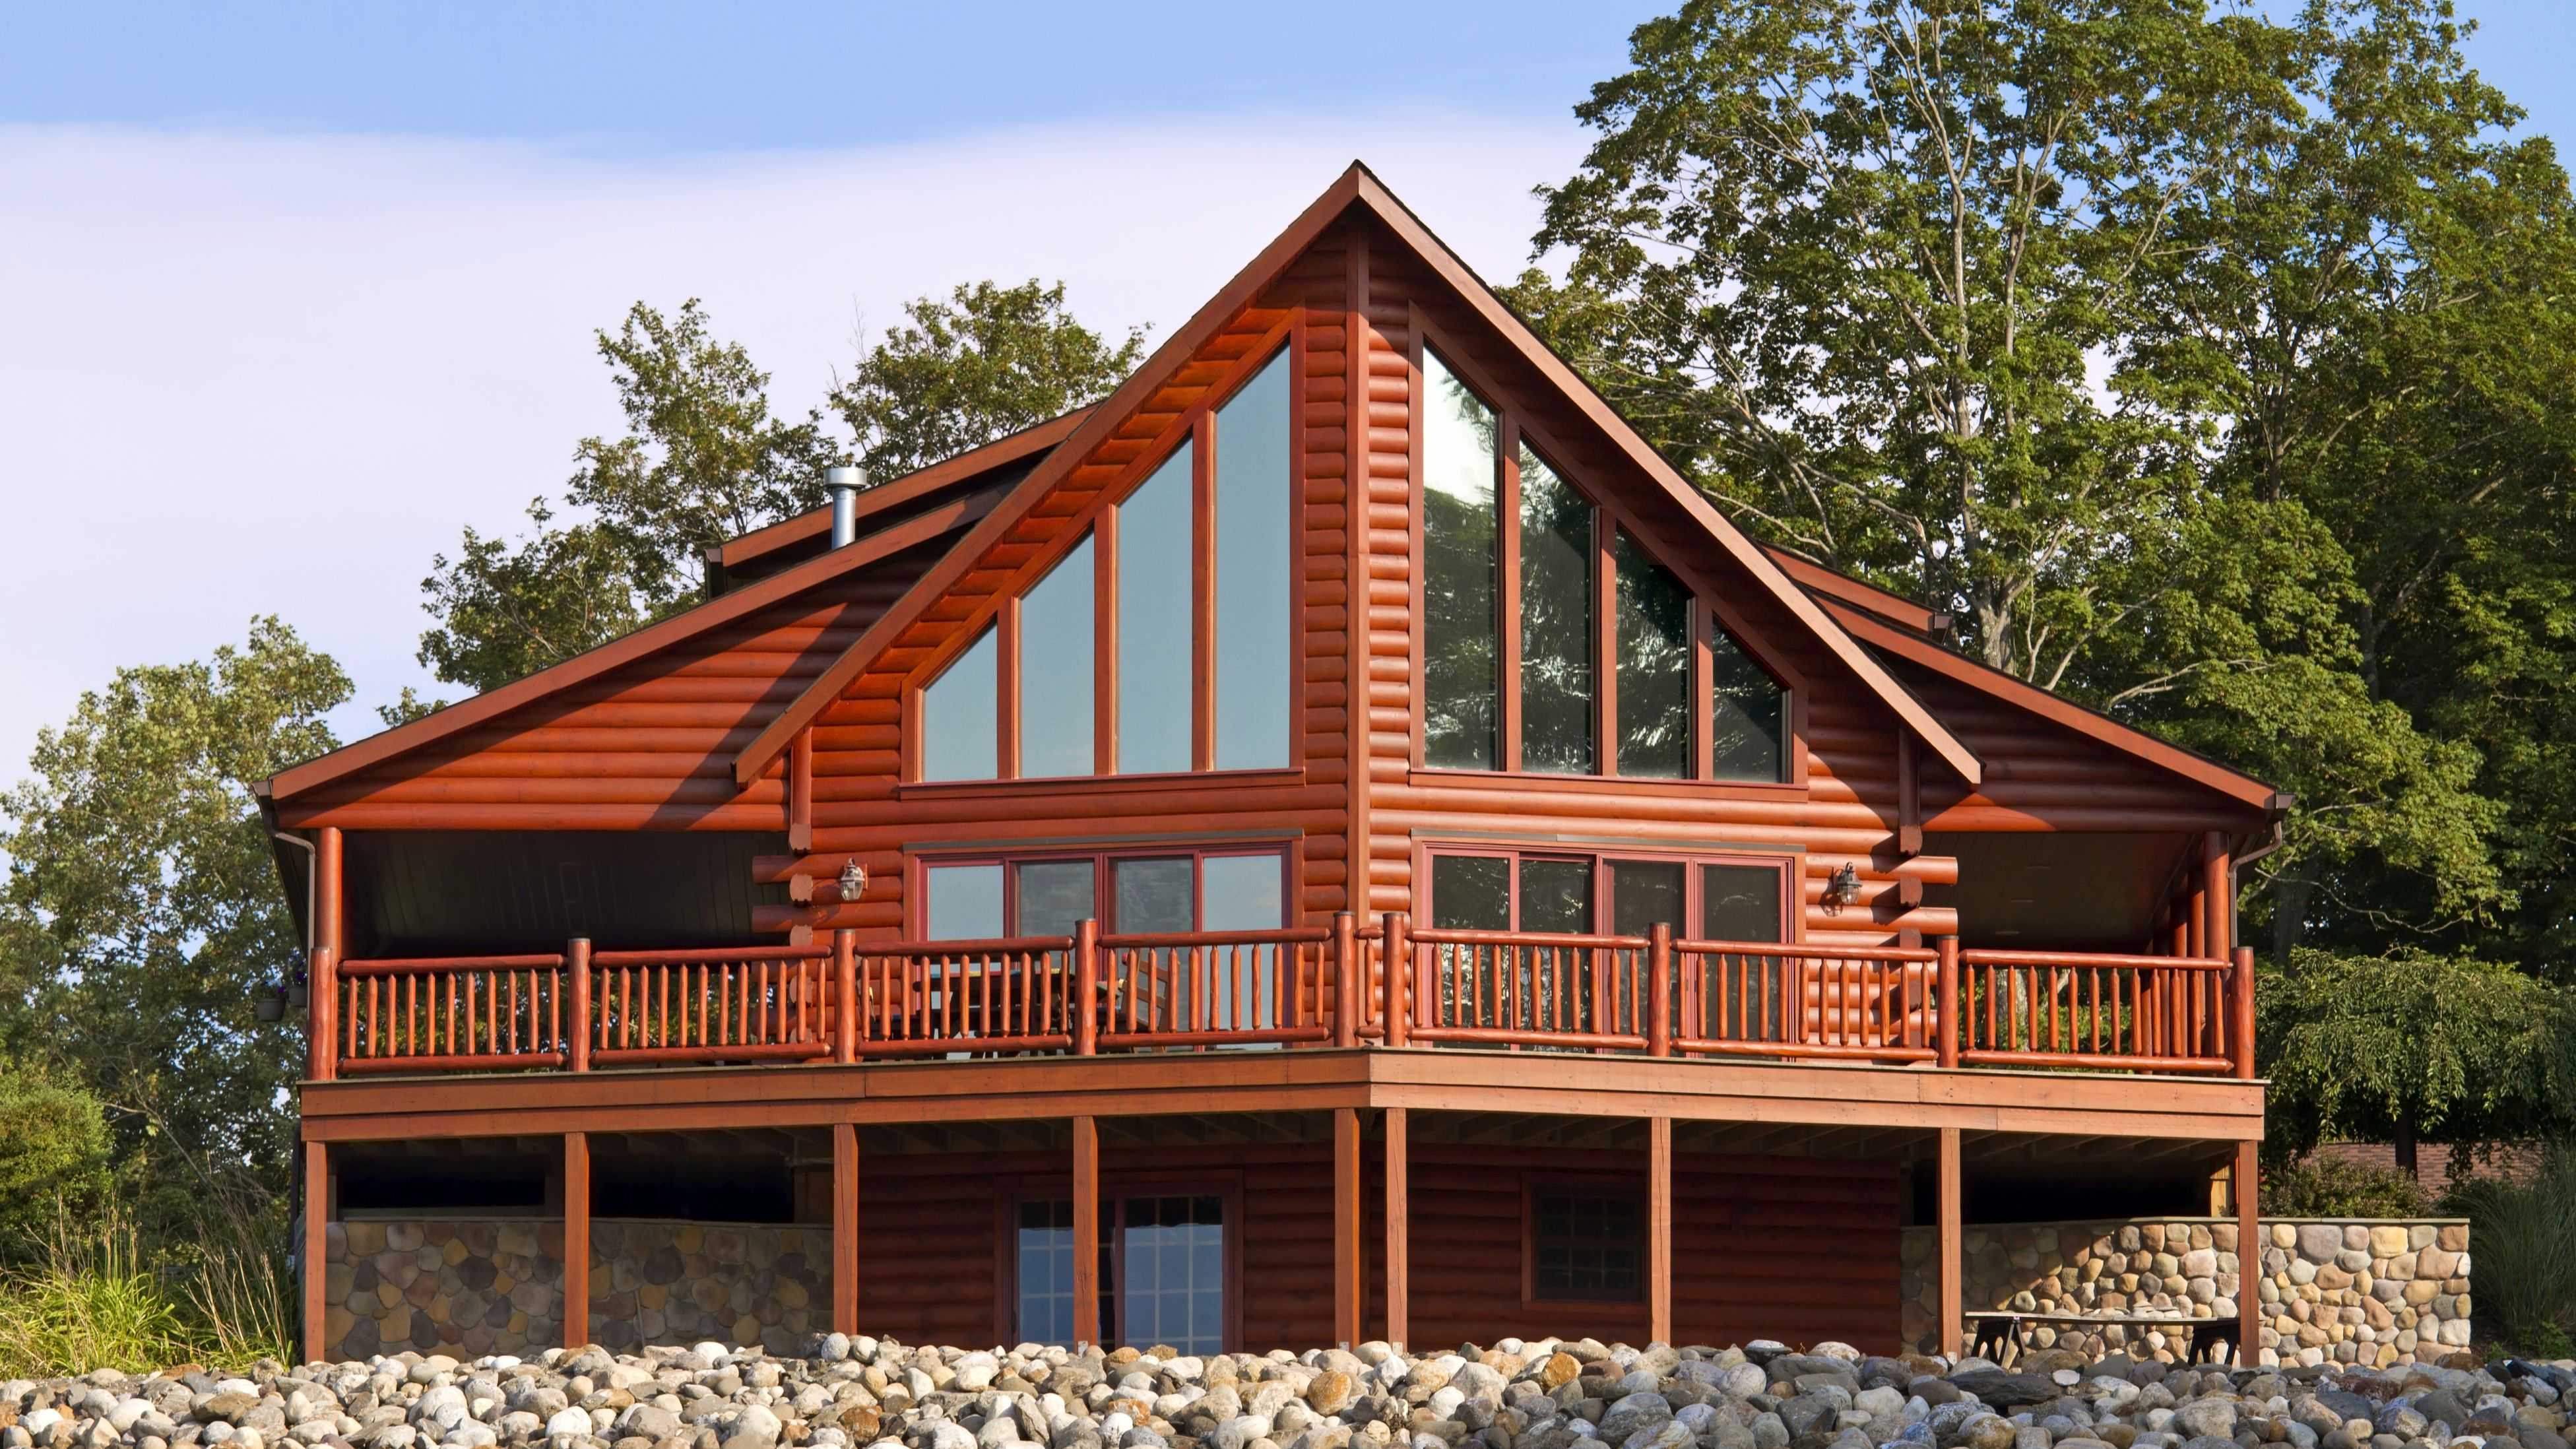 Pioneer Log Homes France the architecture of the log cabin